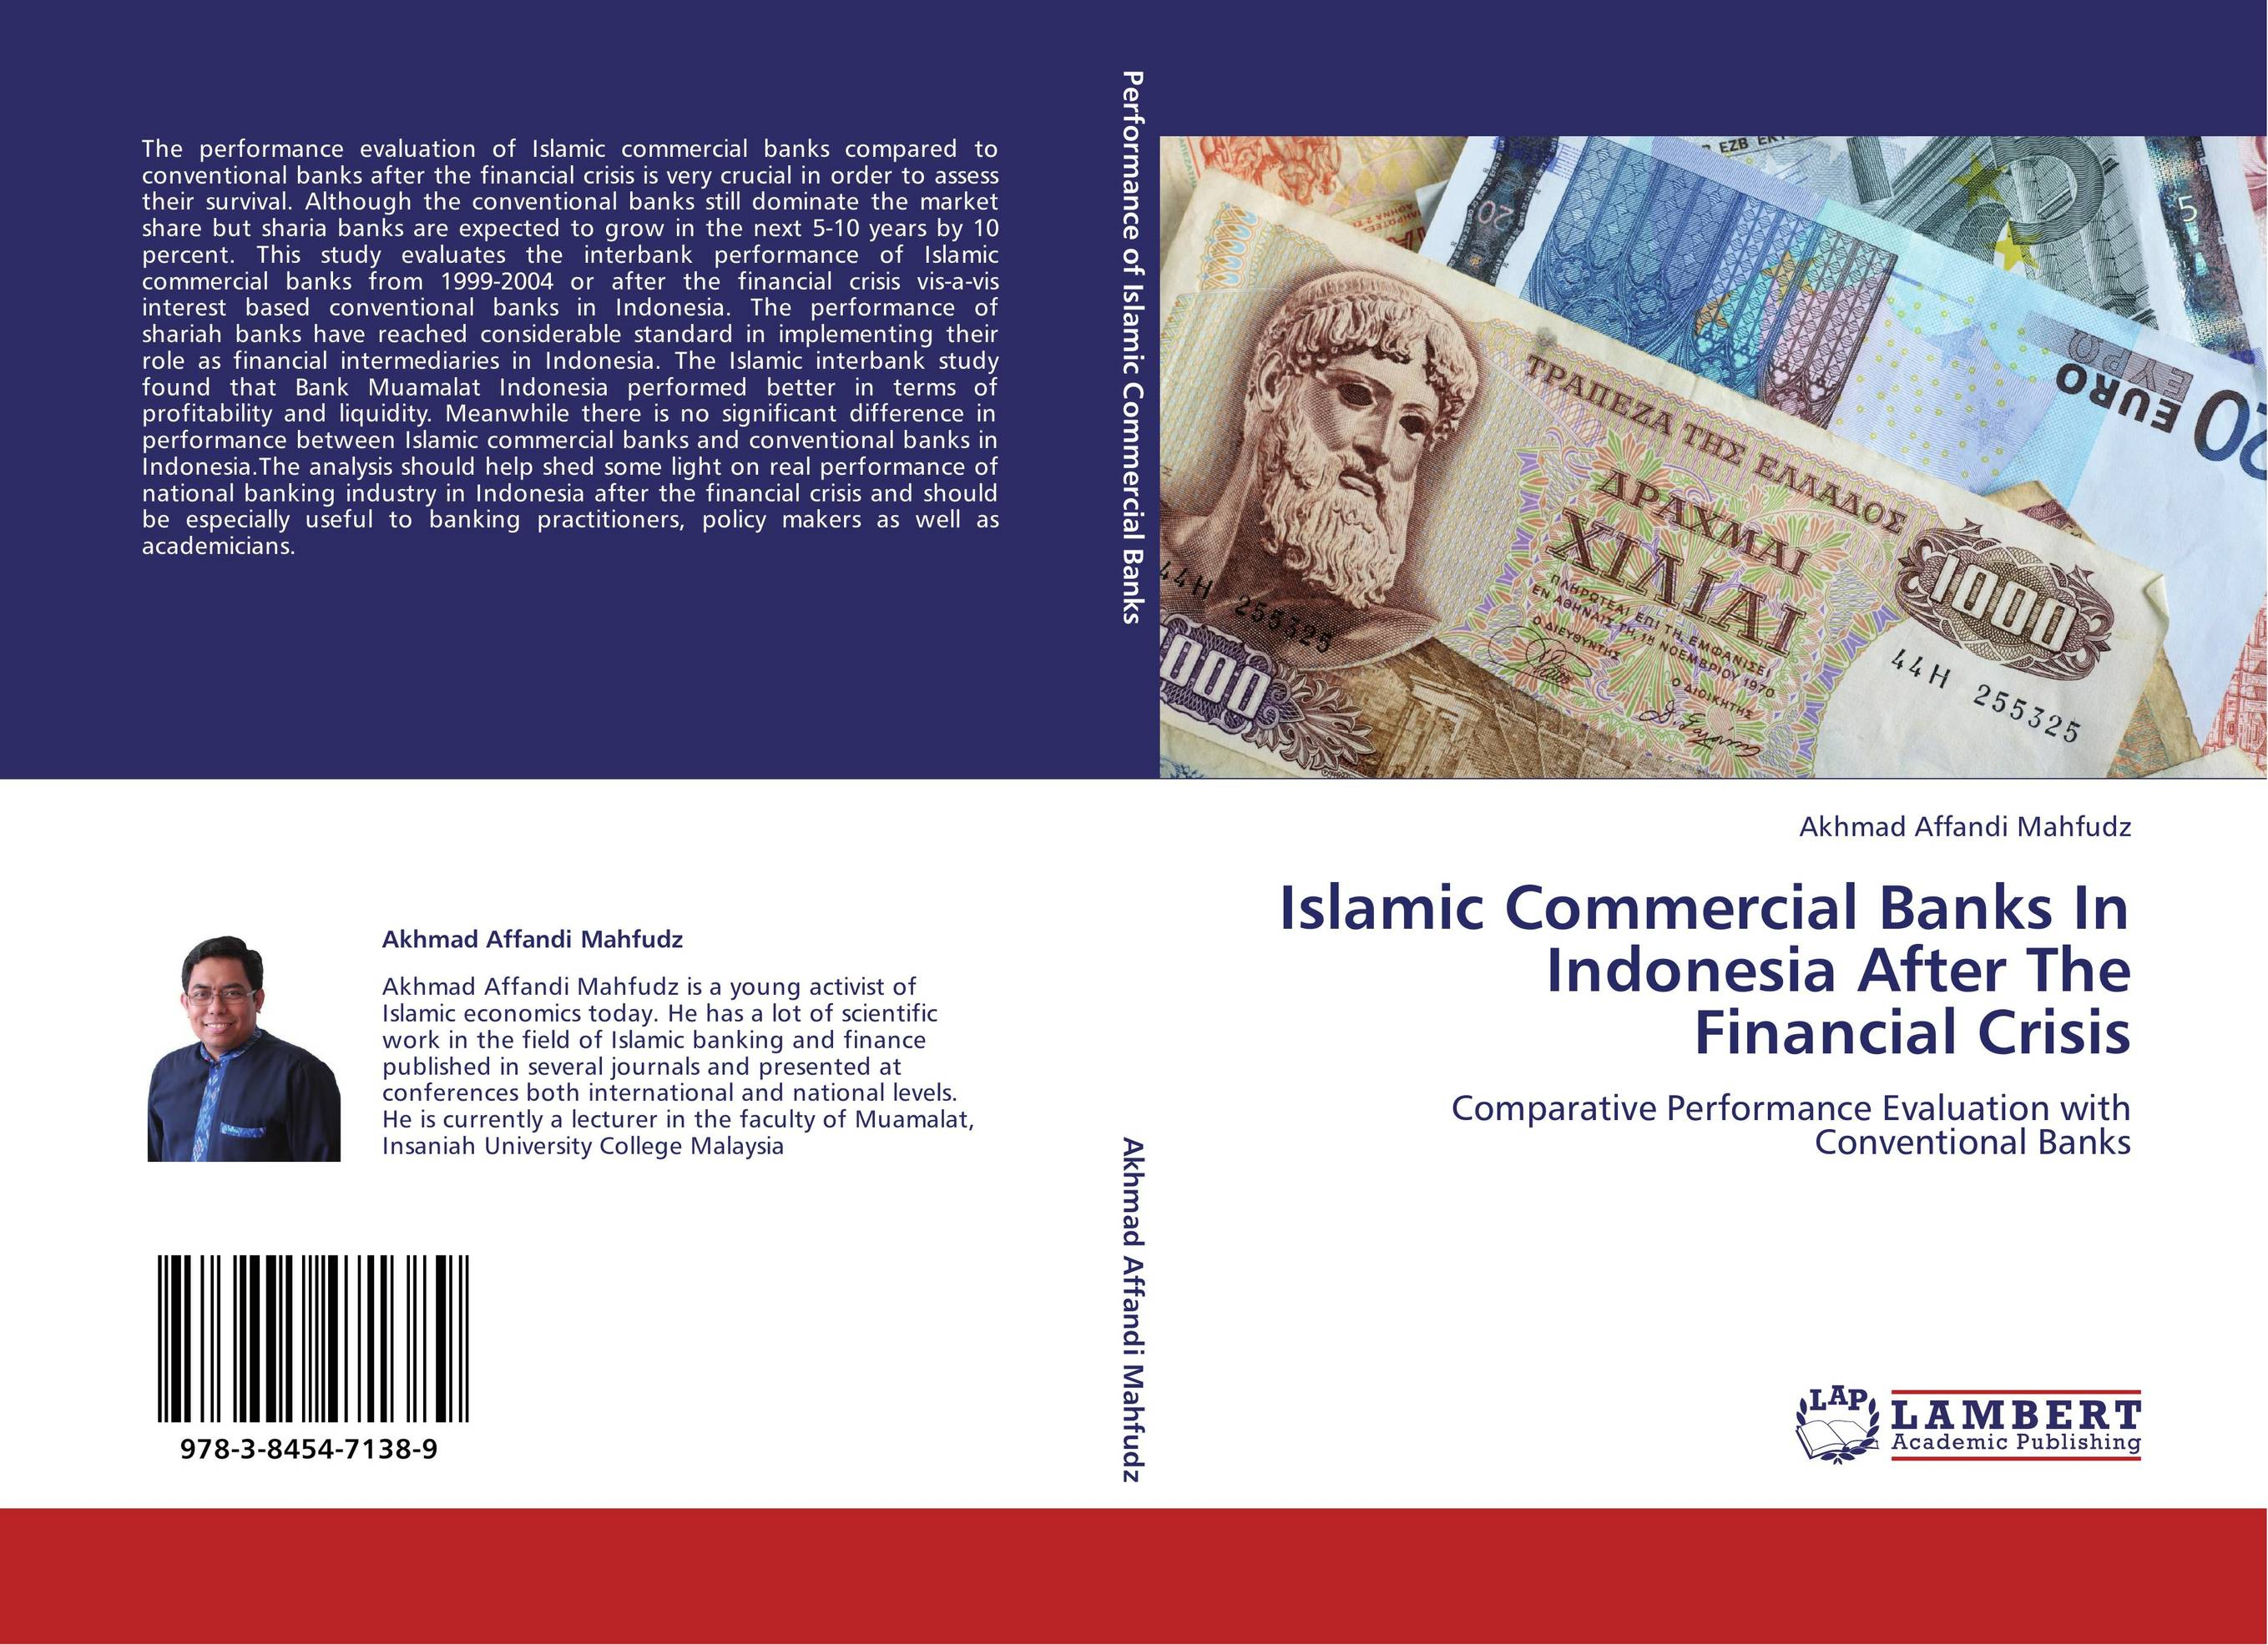 comparison between islamic banking and conventional The main difference between them is as follows: islamic banking is based on real business deals and real economic activities that bear risk and are open to acquire profits while conventional banks are based on riba (interest) lending and borrowing activities which avoid risk and thus promote social injustice and later leads to economic crises and depressions.